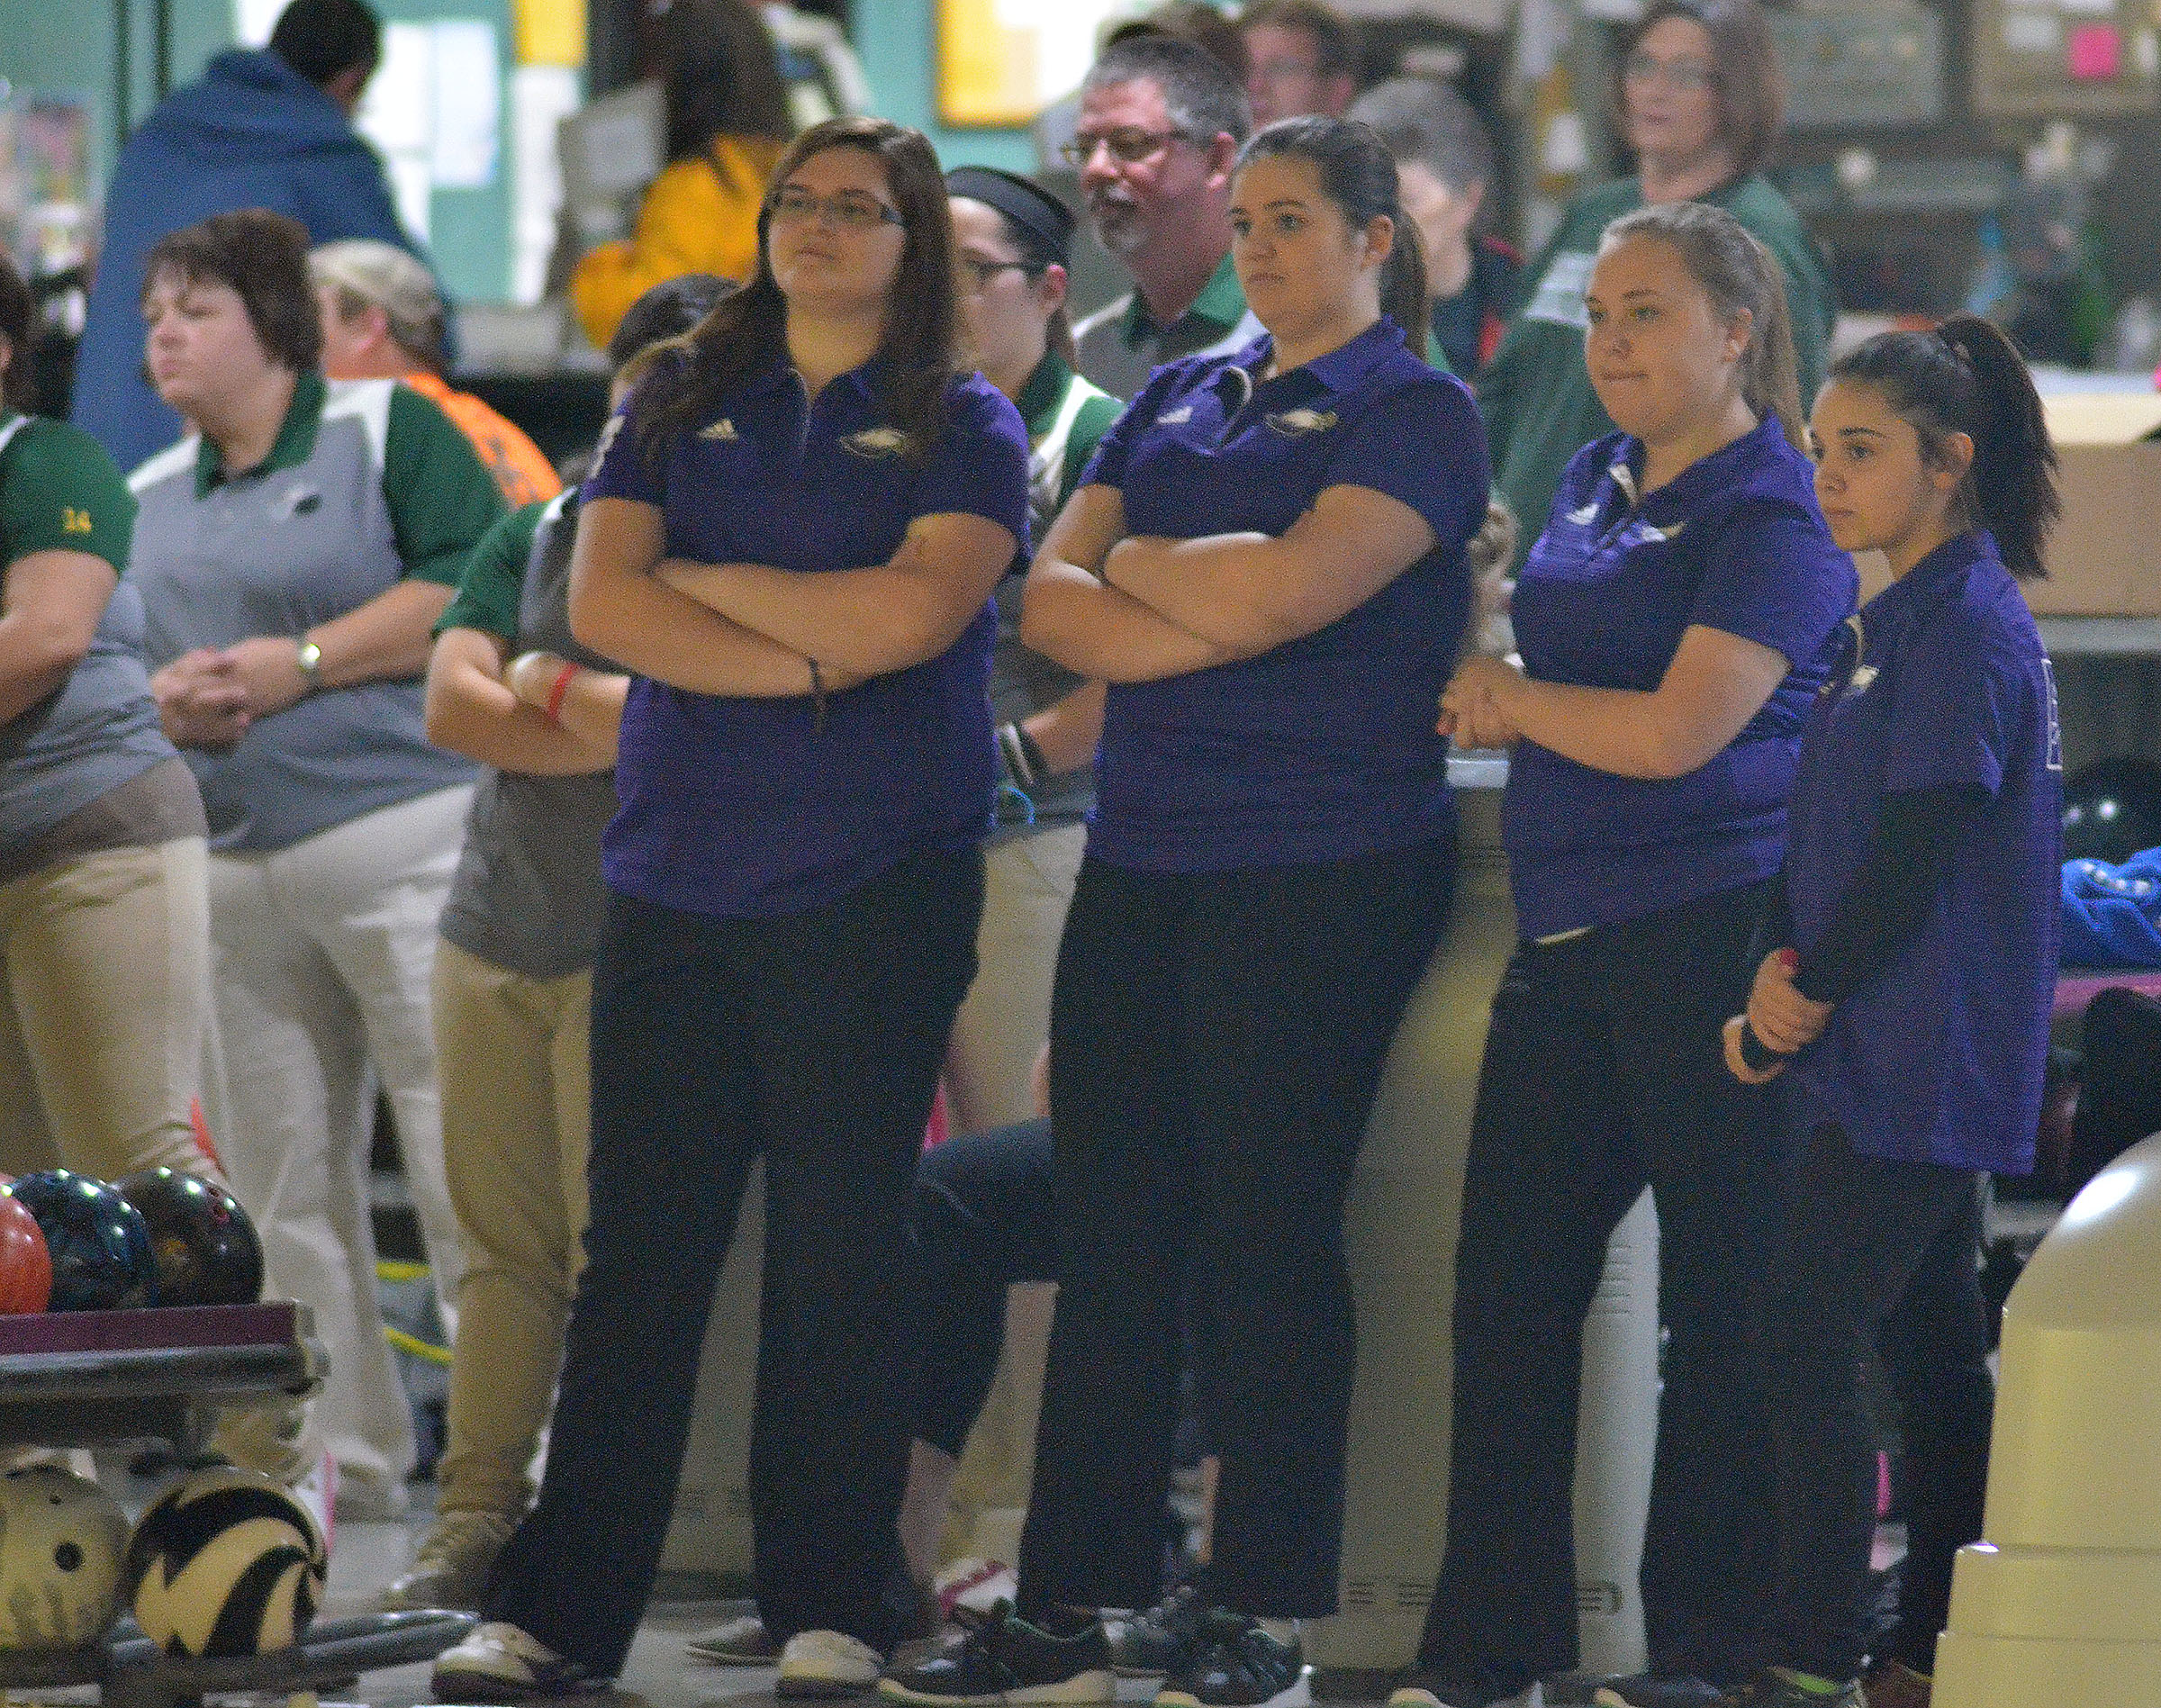 From left, CHS senior Vera Brown, juniors Vivian Brown and Haley Fitch and freshman Fatimah Alabusalim watch as the Green County team bowls.